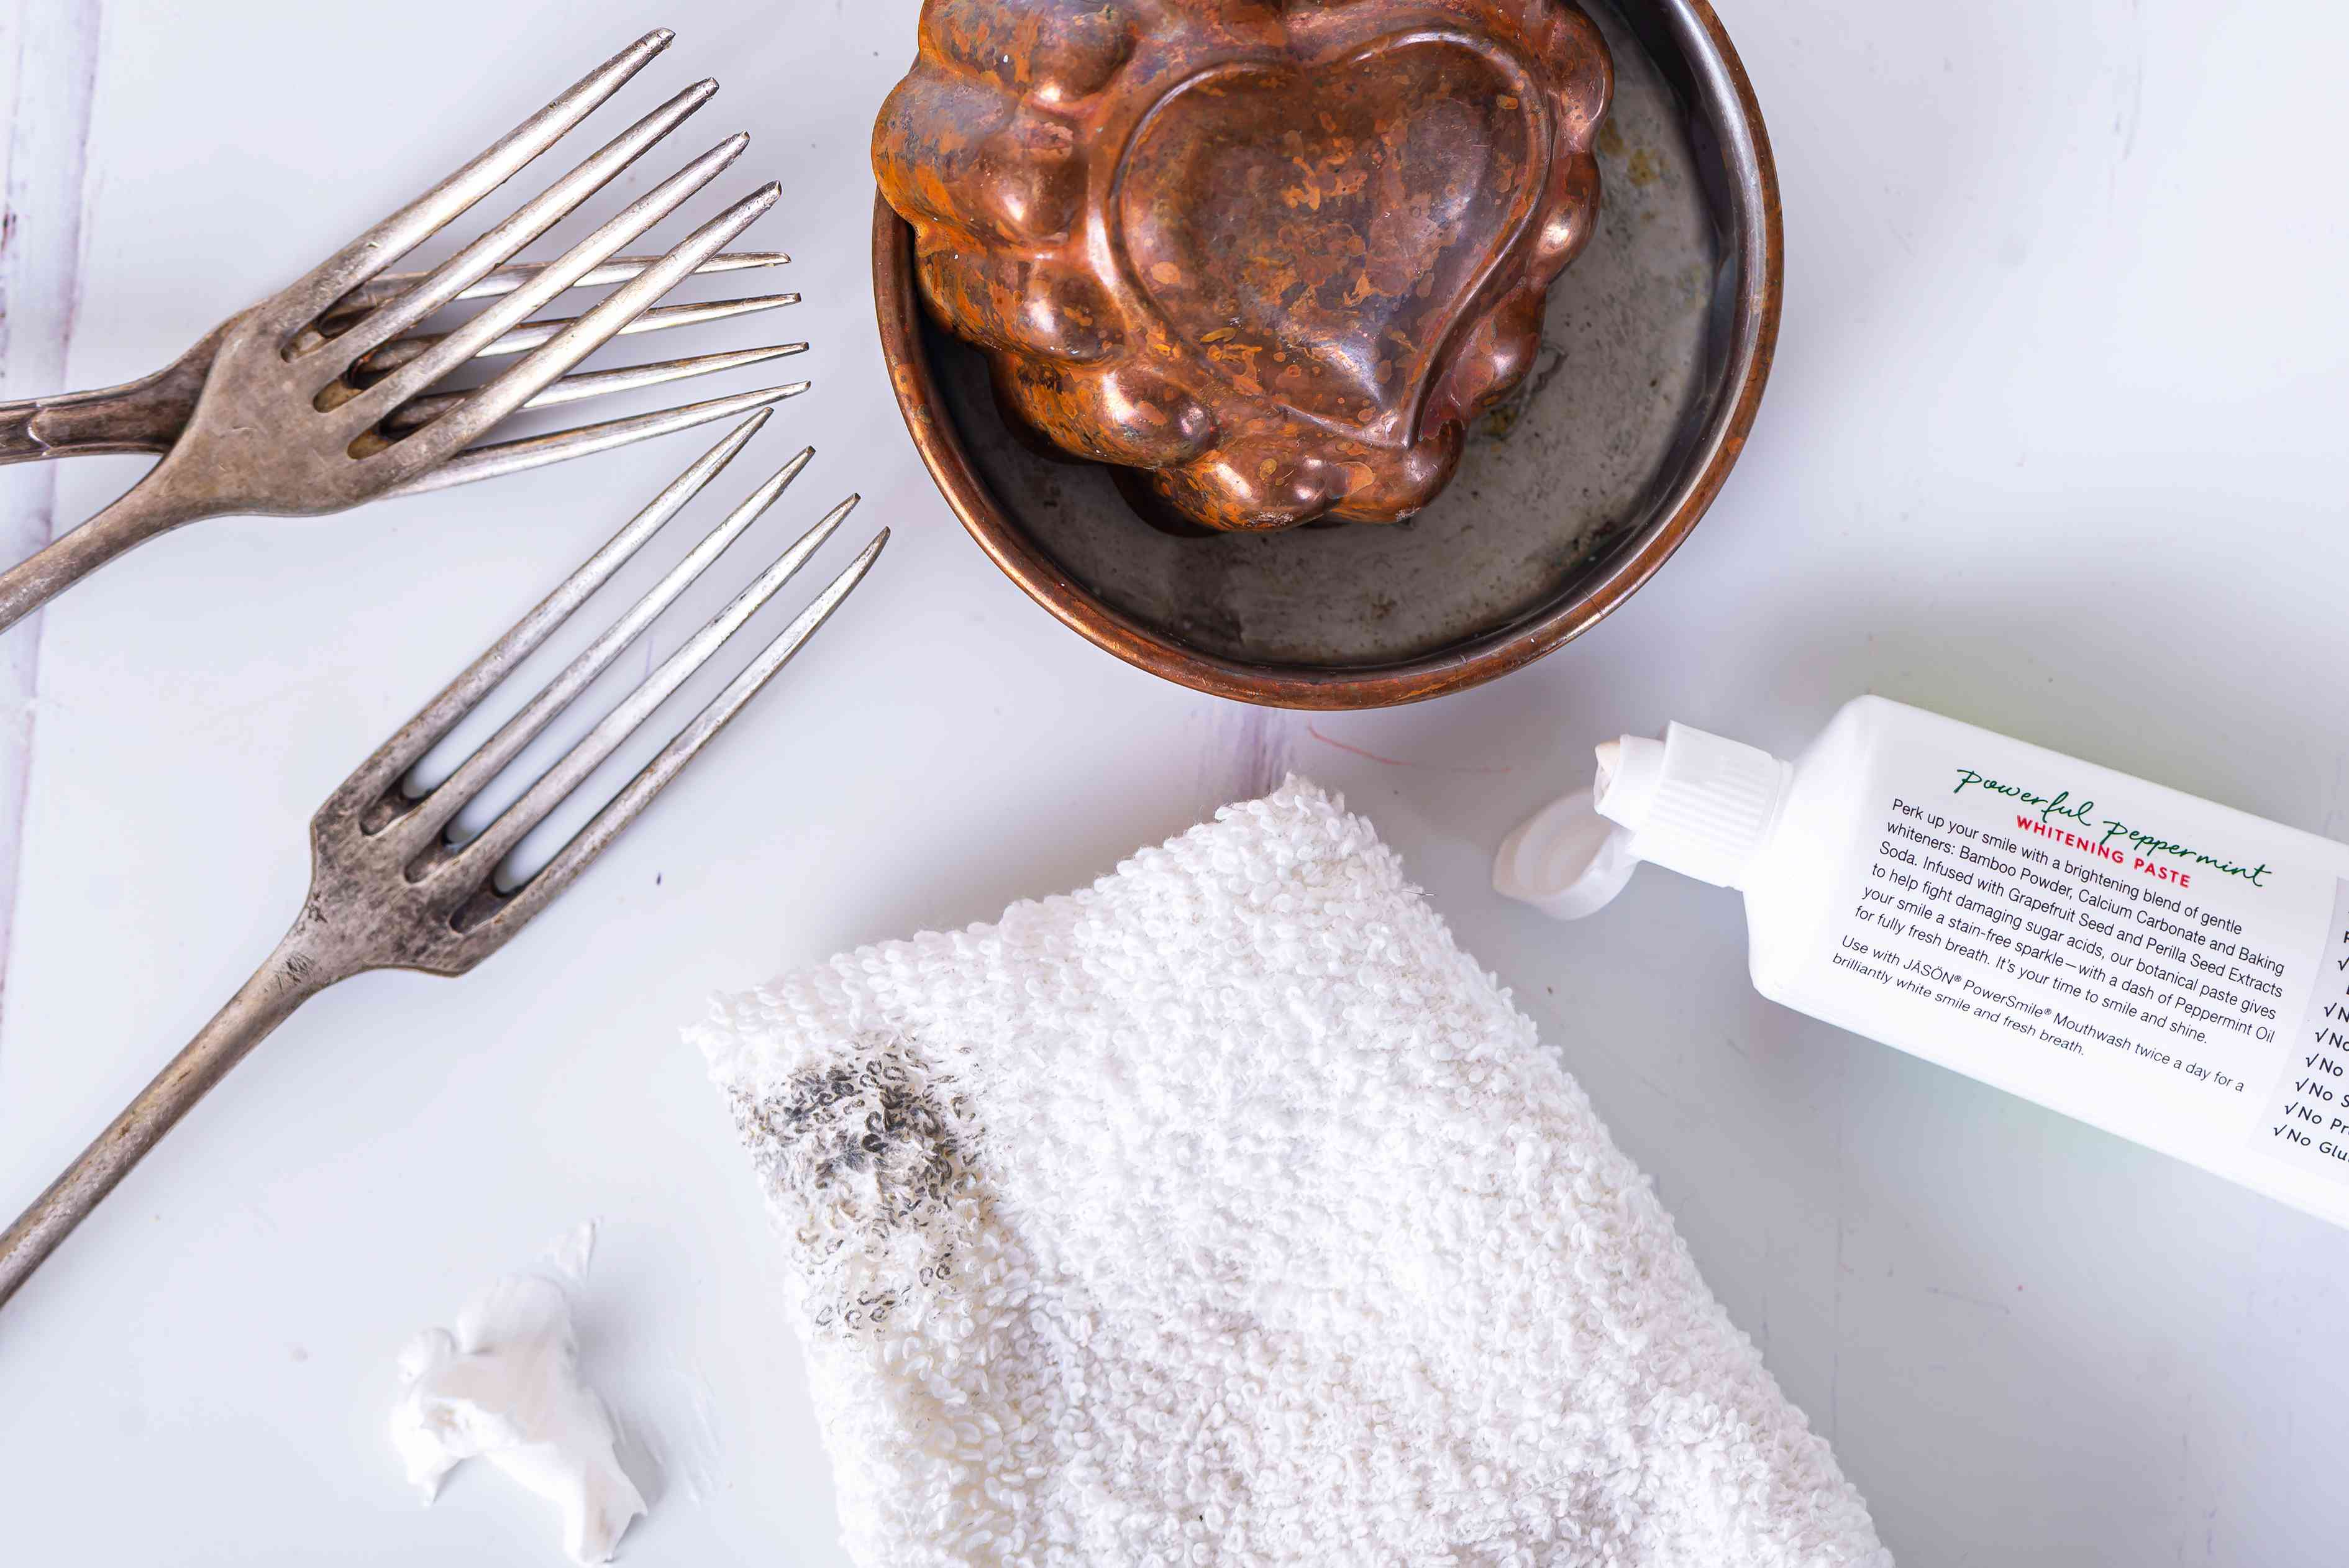 toothpaste can be used to polish silver and copper pots